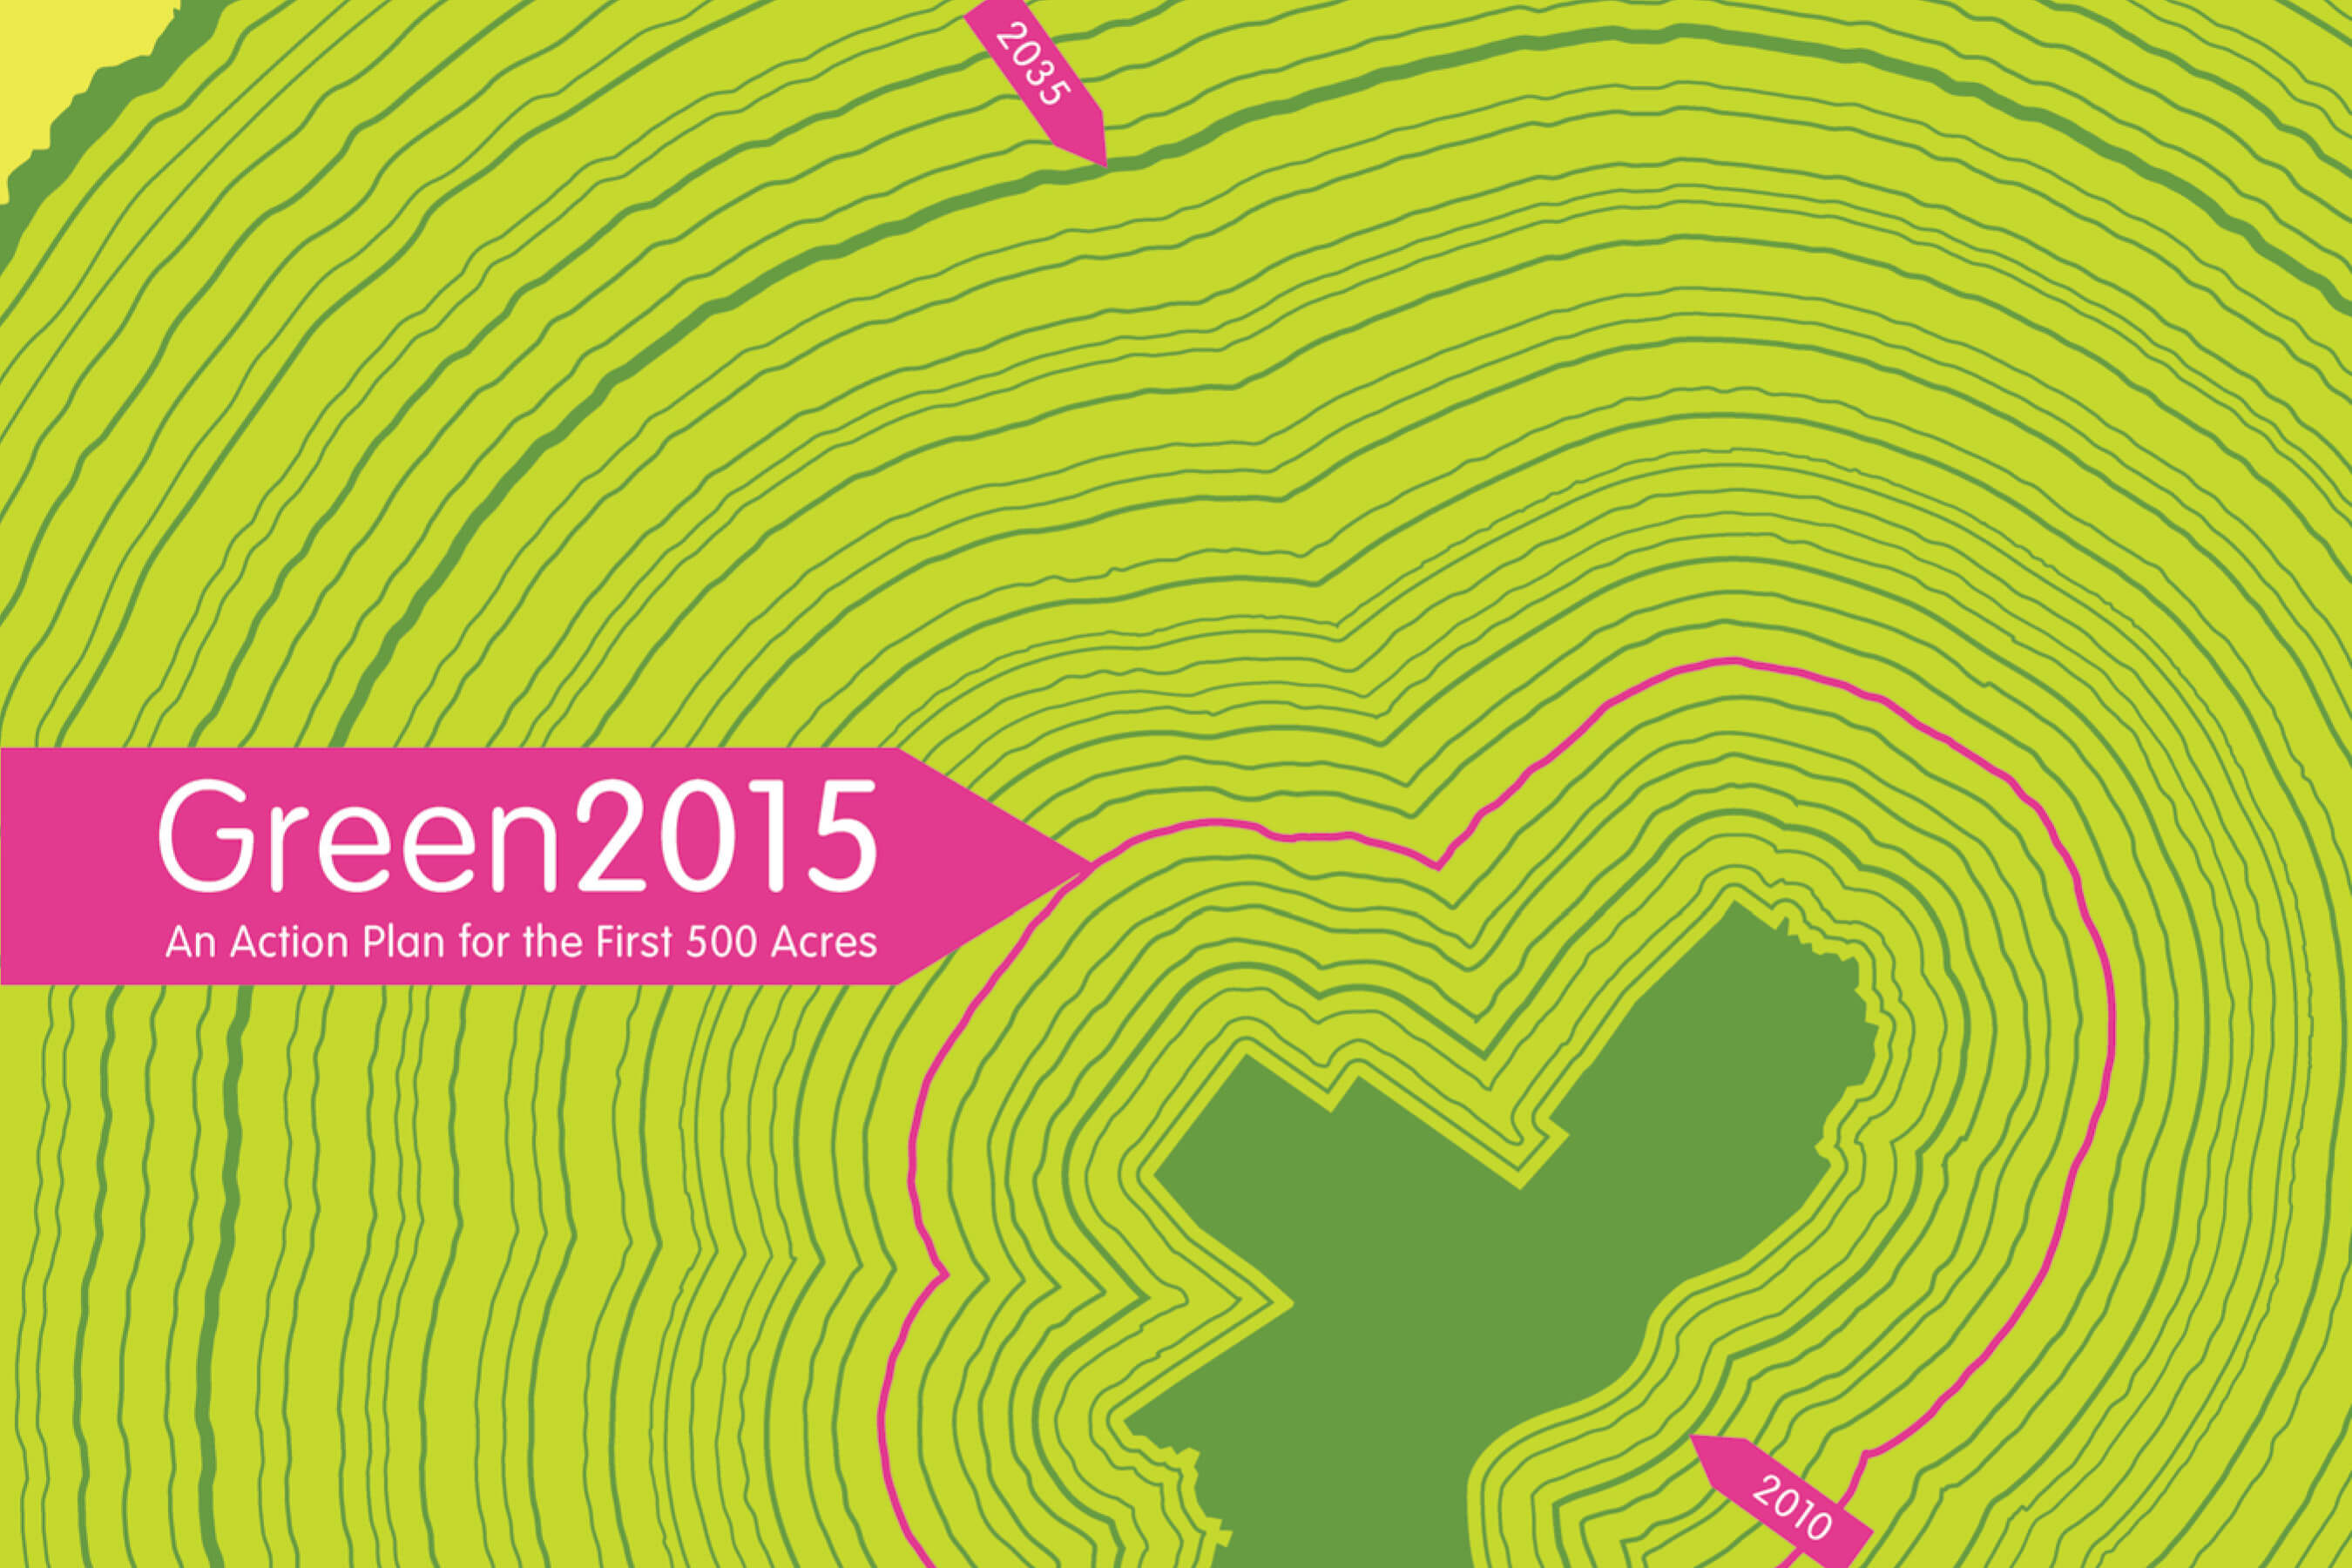 Green2015 An Action Plan for Philadelphia Parks and Recreation